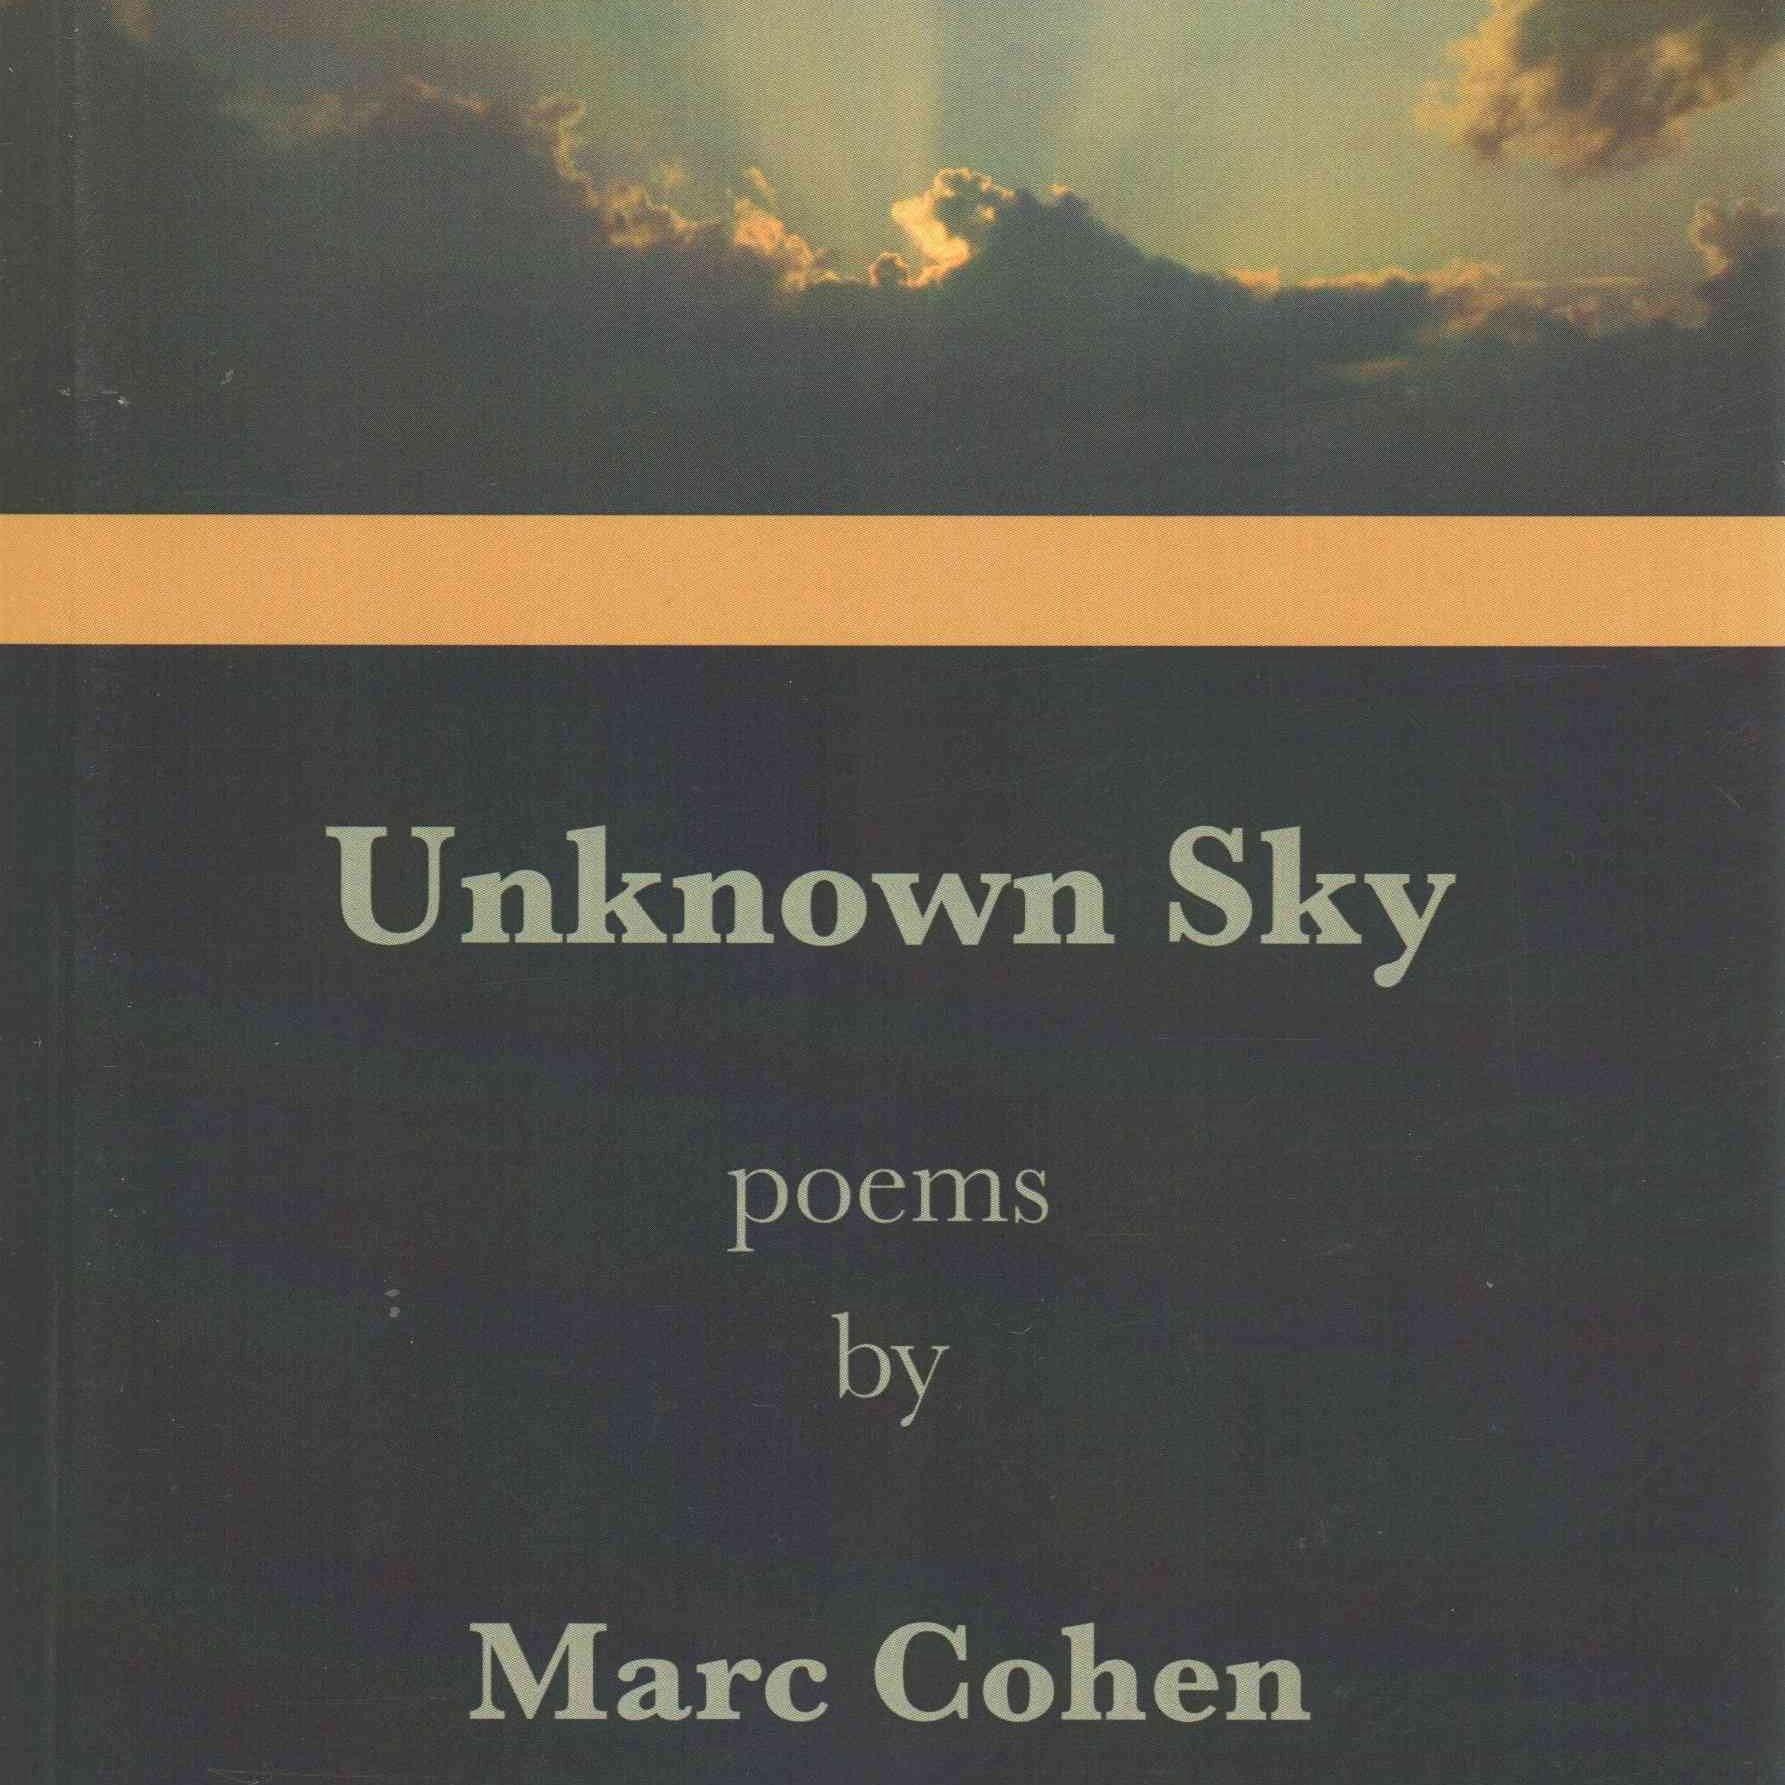 Unknown Sky by Marc Cohen